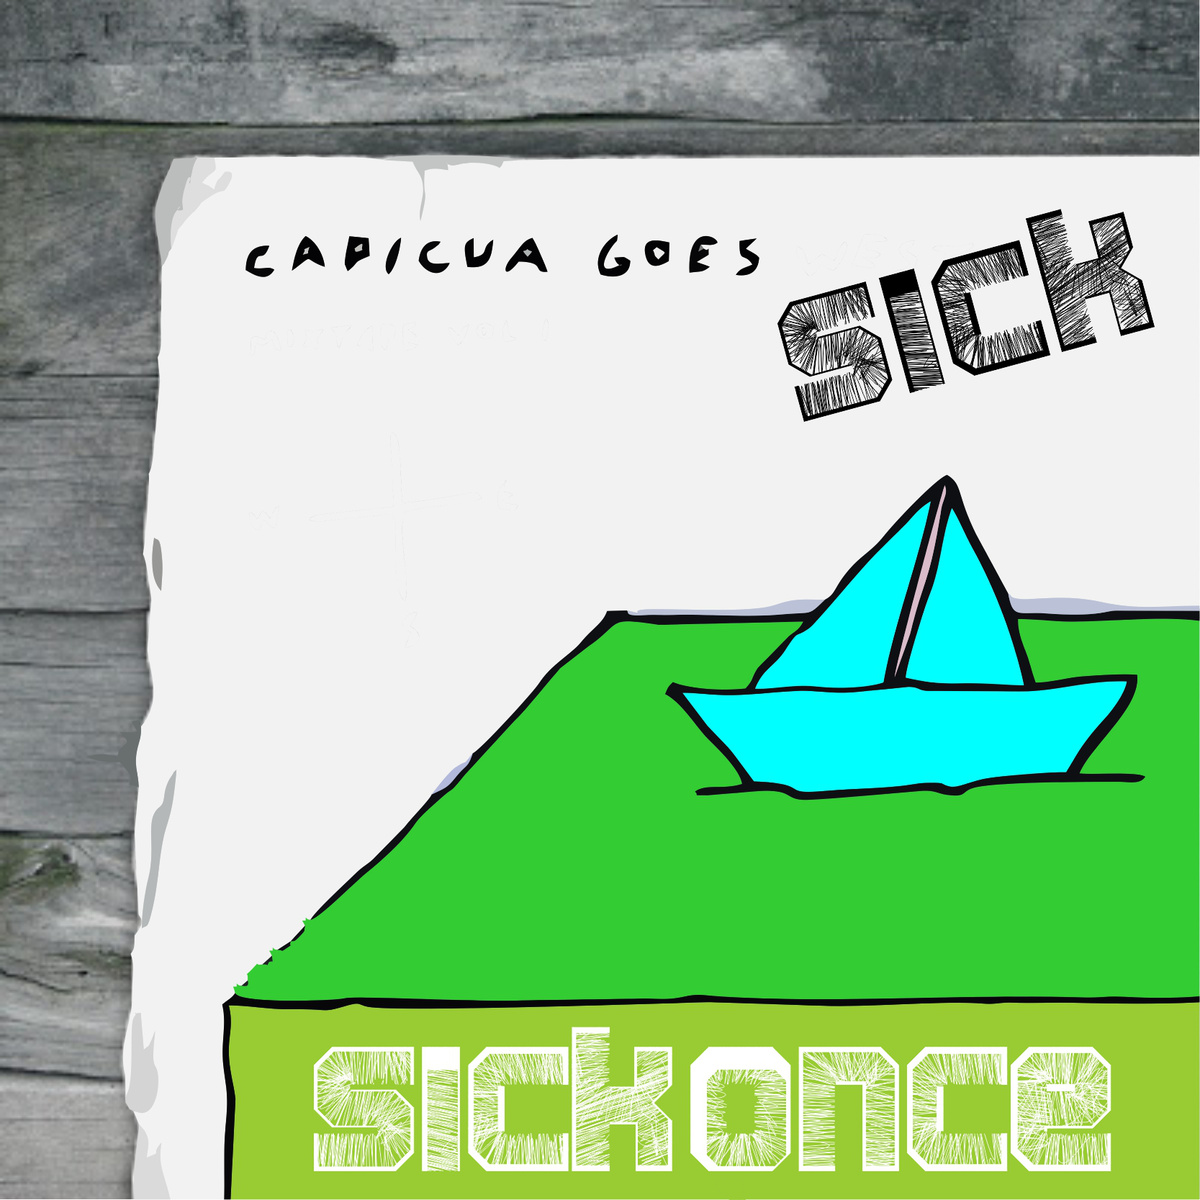 Sickonce - Capicua goes Sick